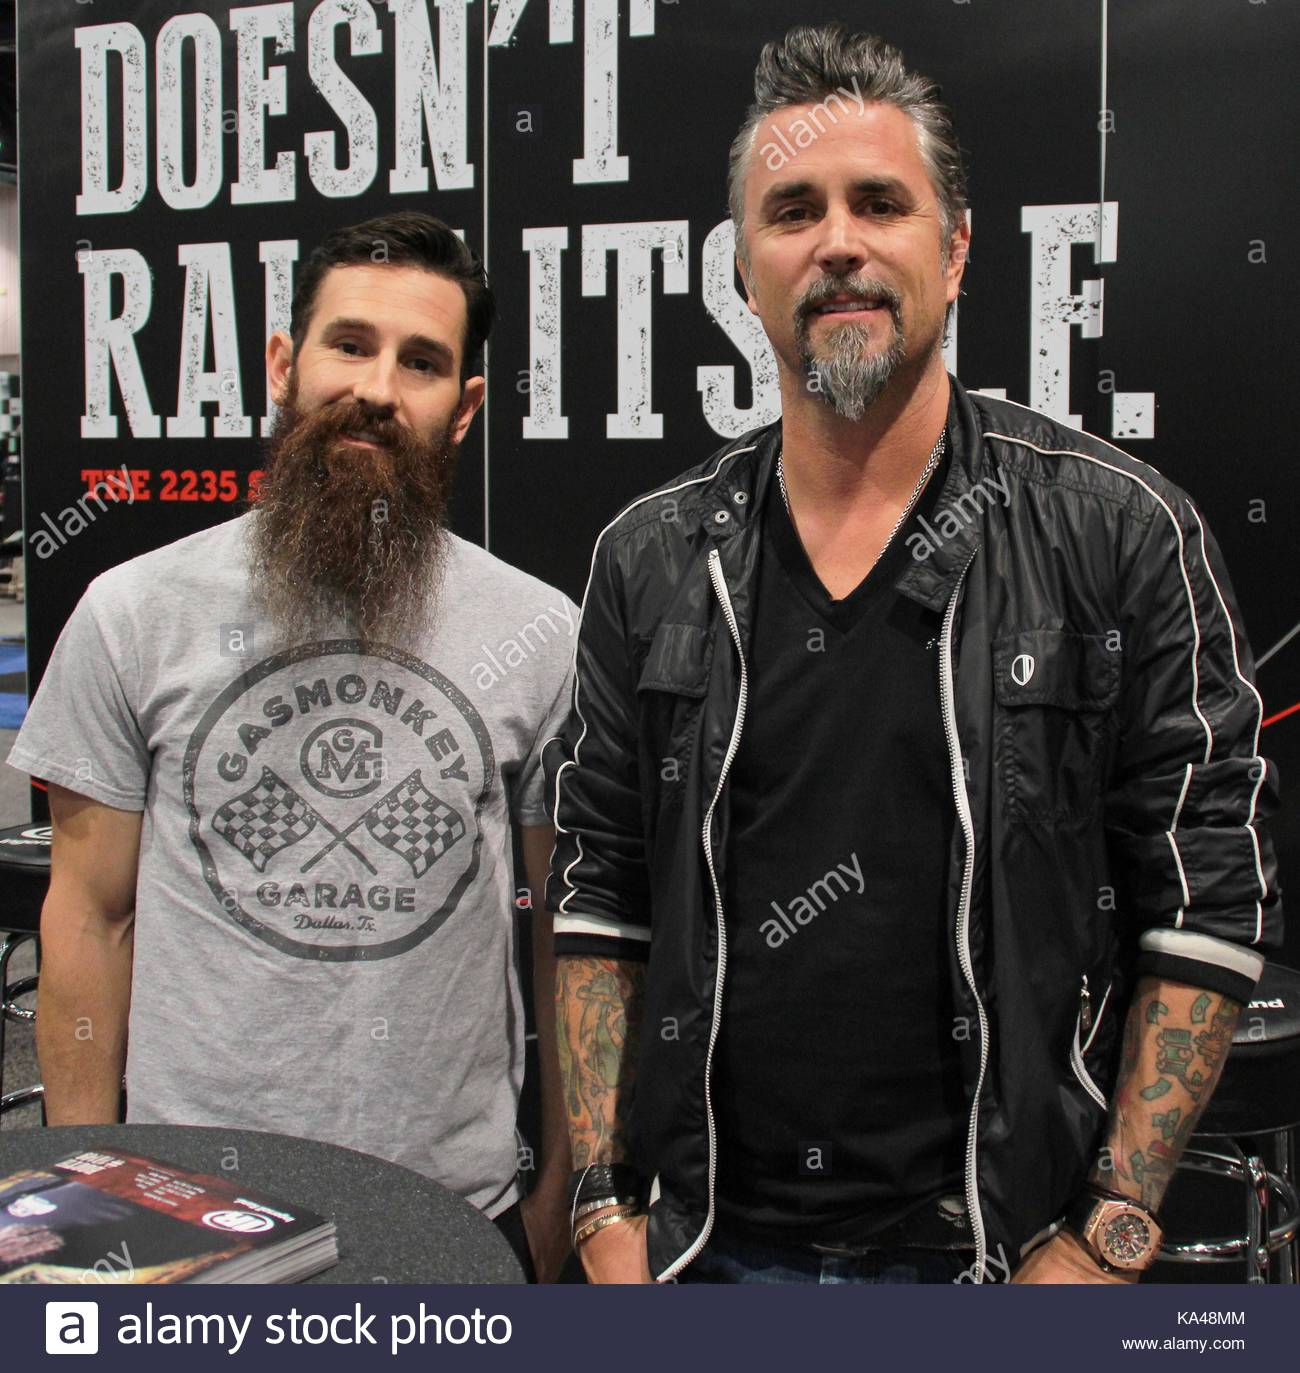 richard rawling and aaron kaufman from gas monkey garage and fast and stock photo 161134532 alamy. Black Bedroom Furniture Sets. Home Design Ideas